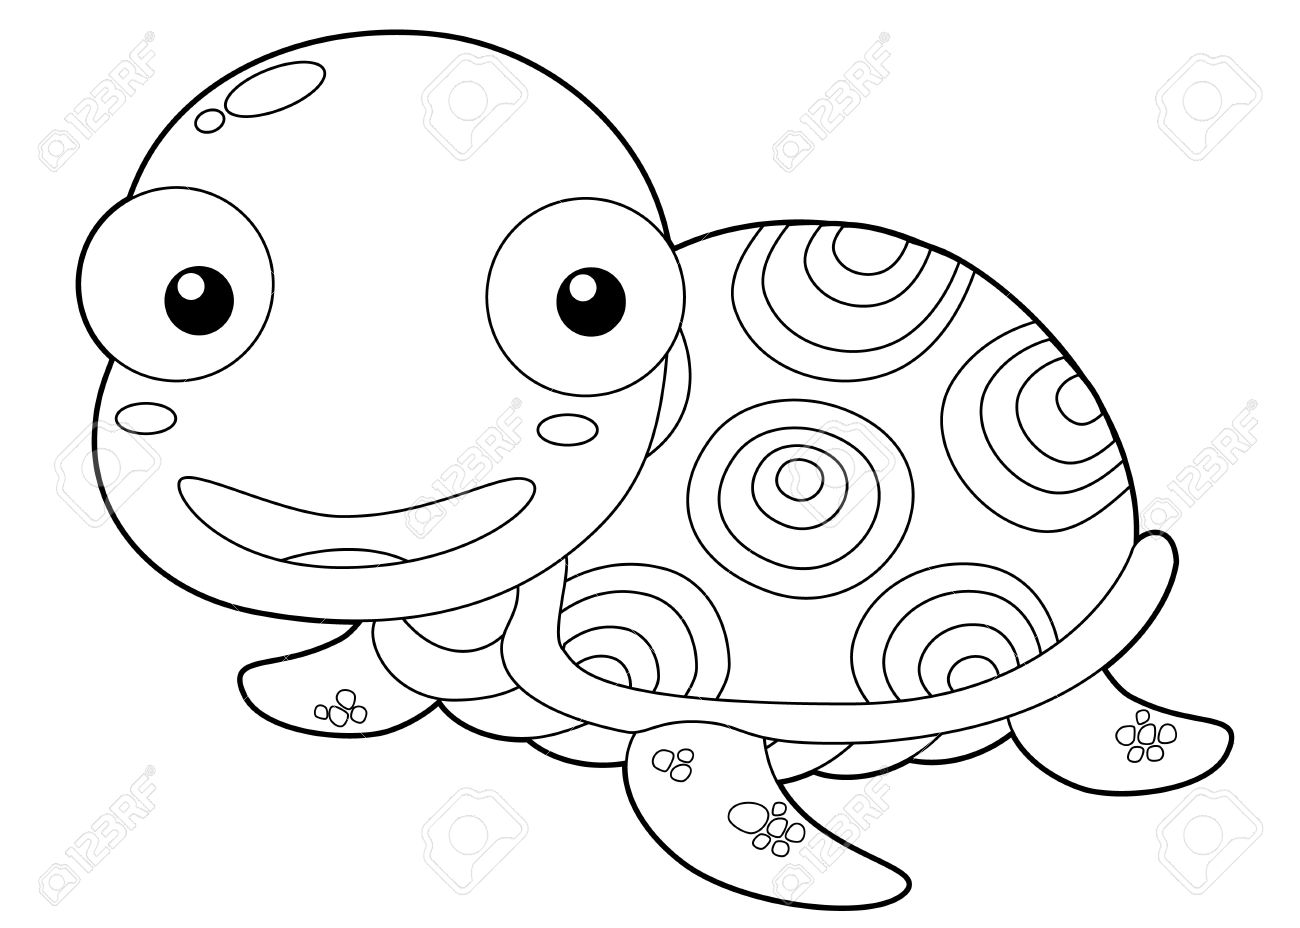 illustration of cartoon turtle outline stock vector 16392834 - Outline Cartoon Pictures